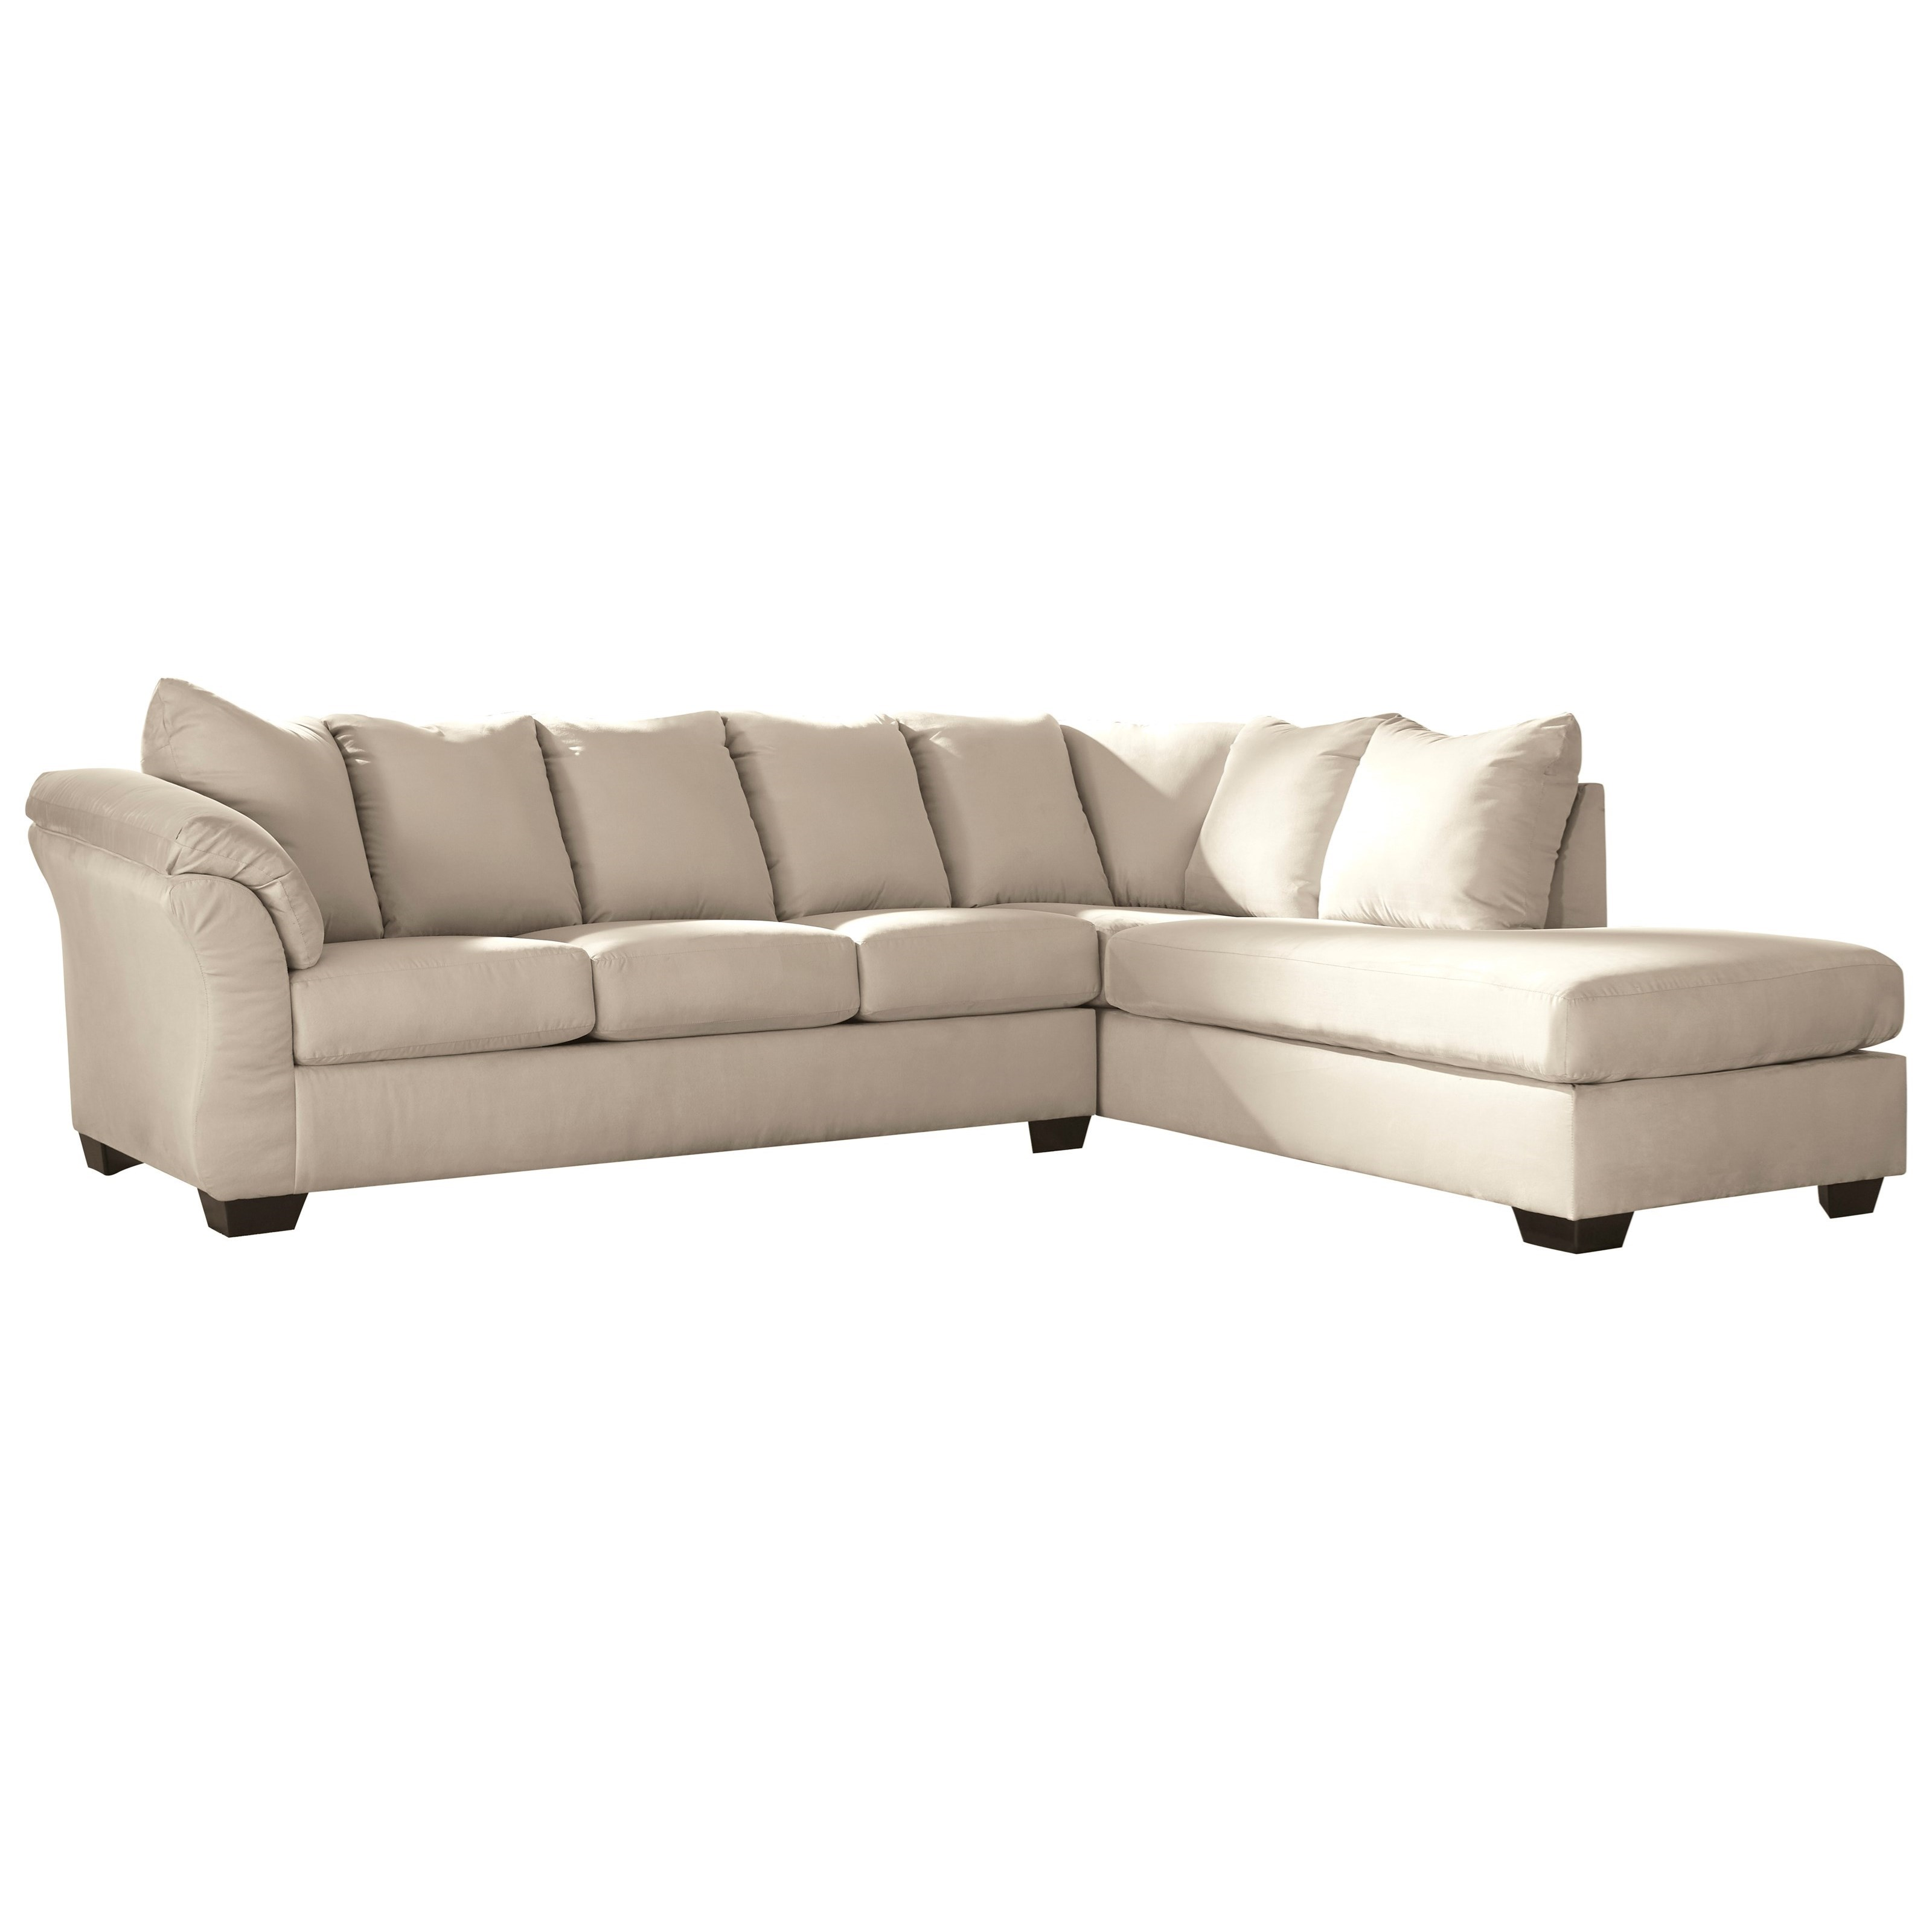 Darcy - Stone 2-Piece Sectional Sofa at Sadler's Home Furnishings